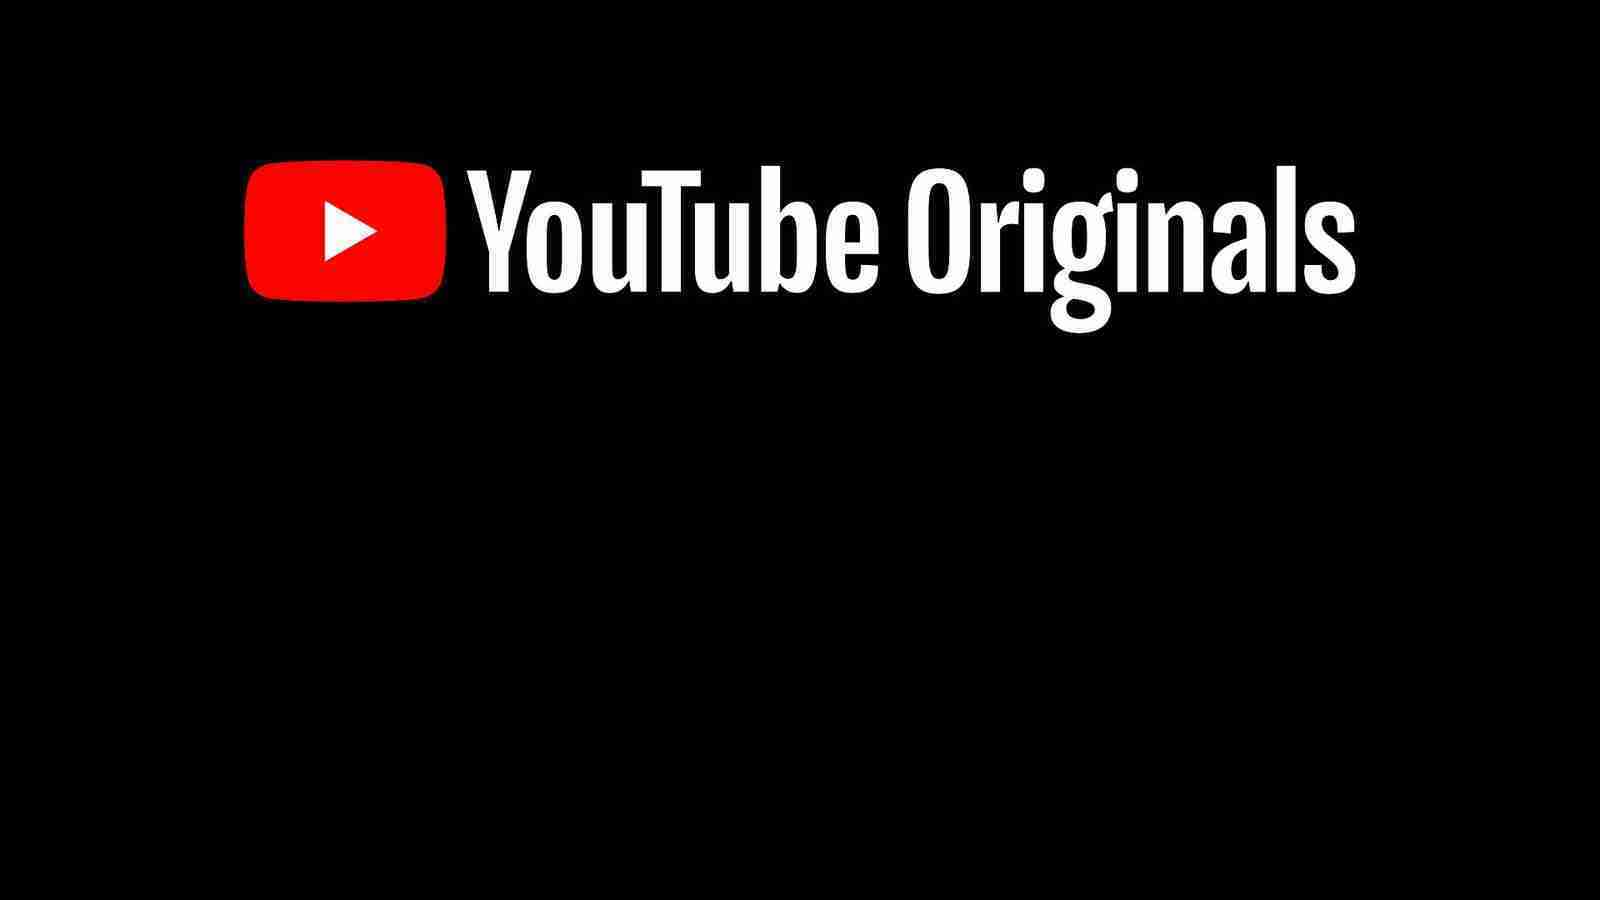 Come guardare Youtube Originals gratis